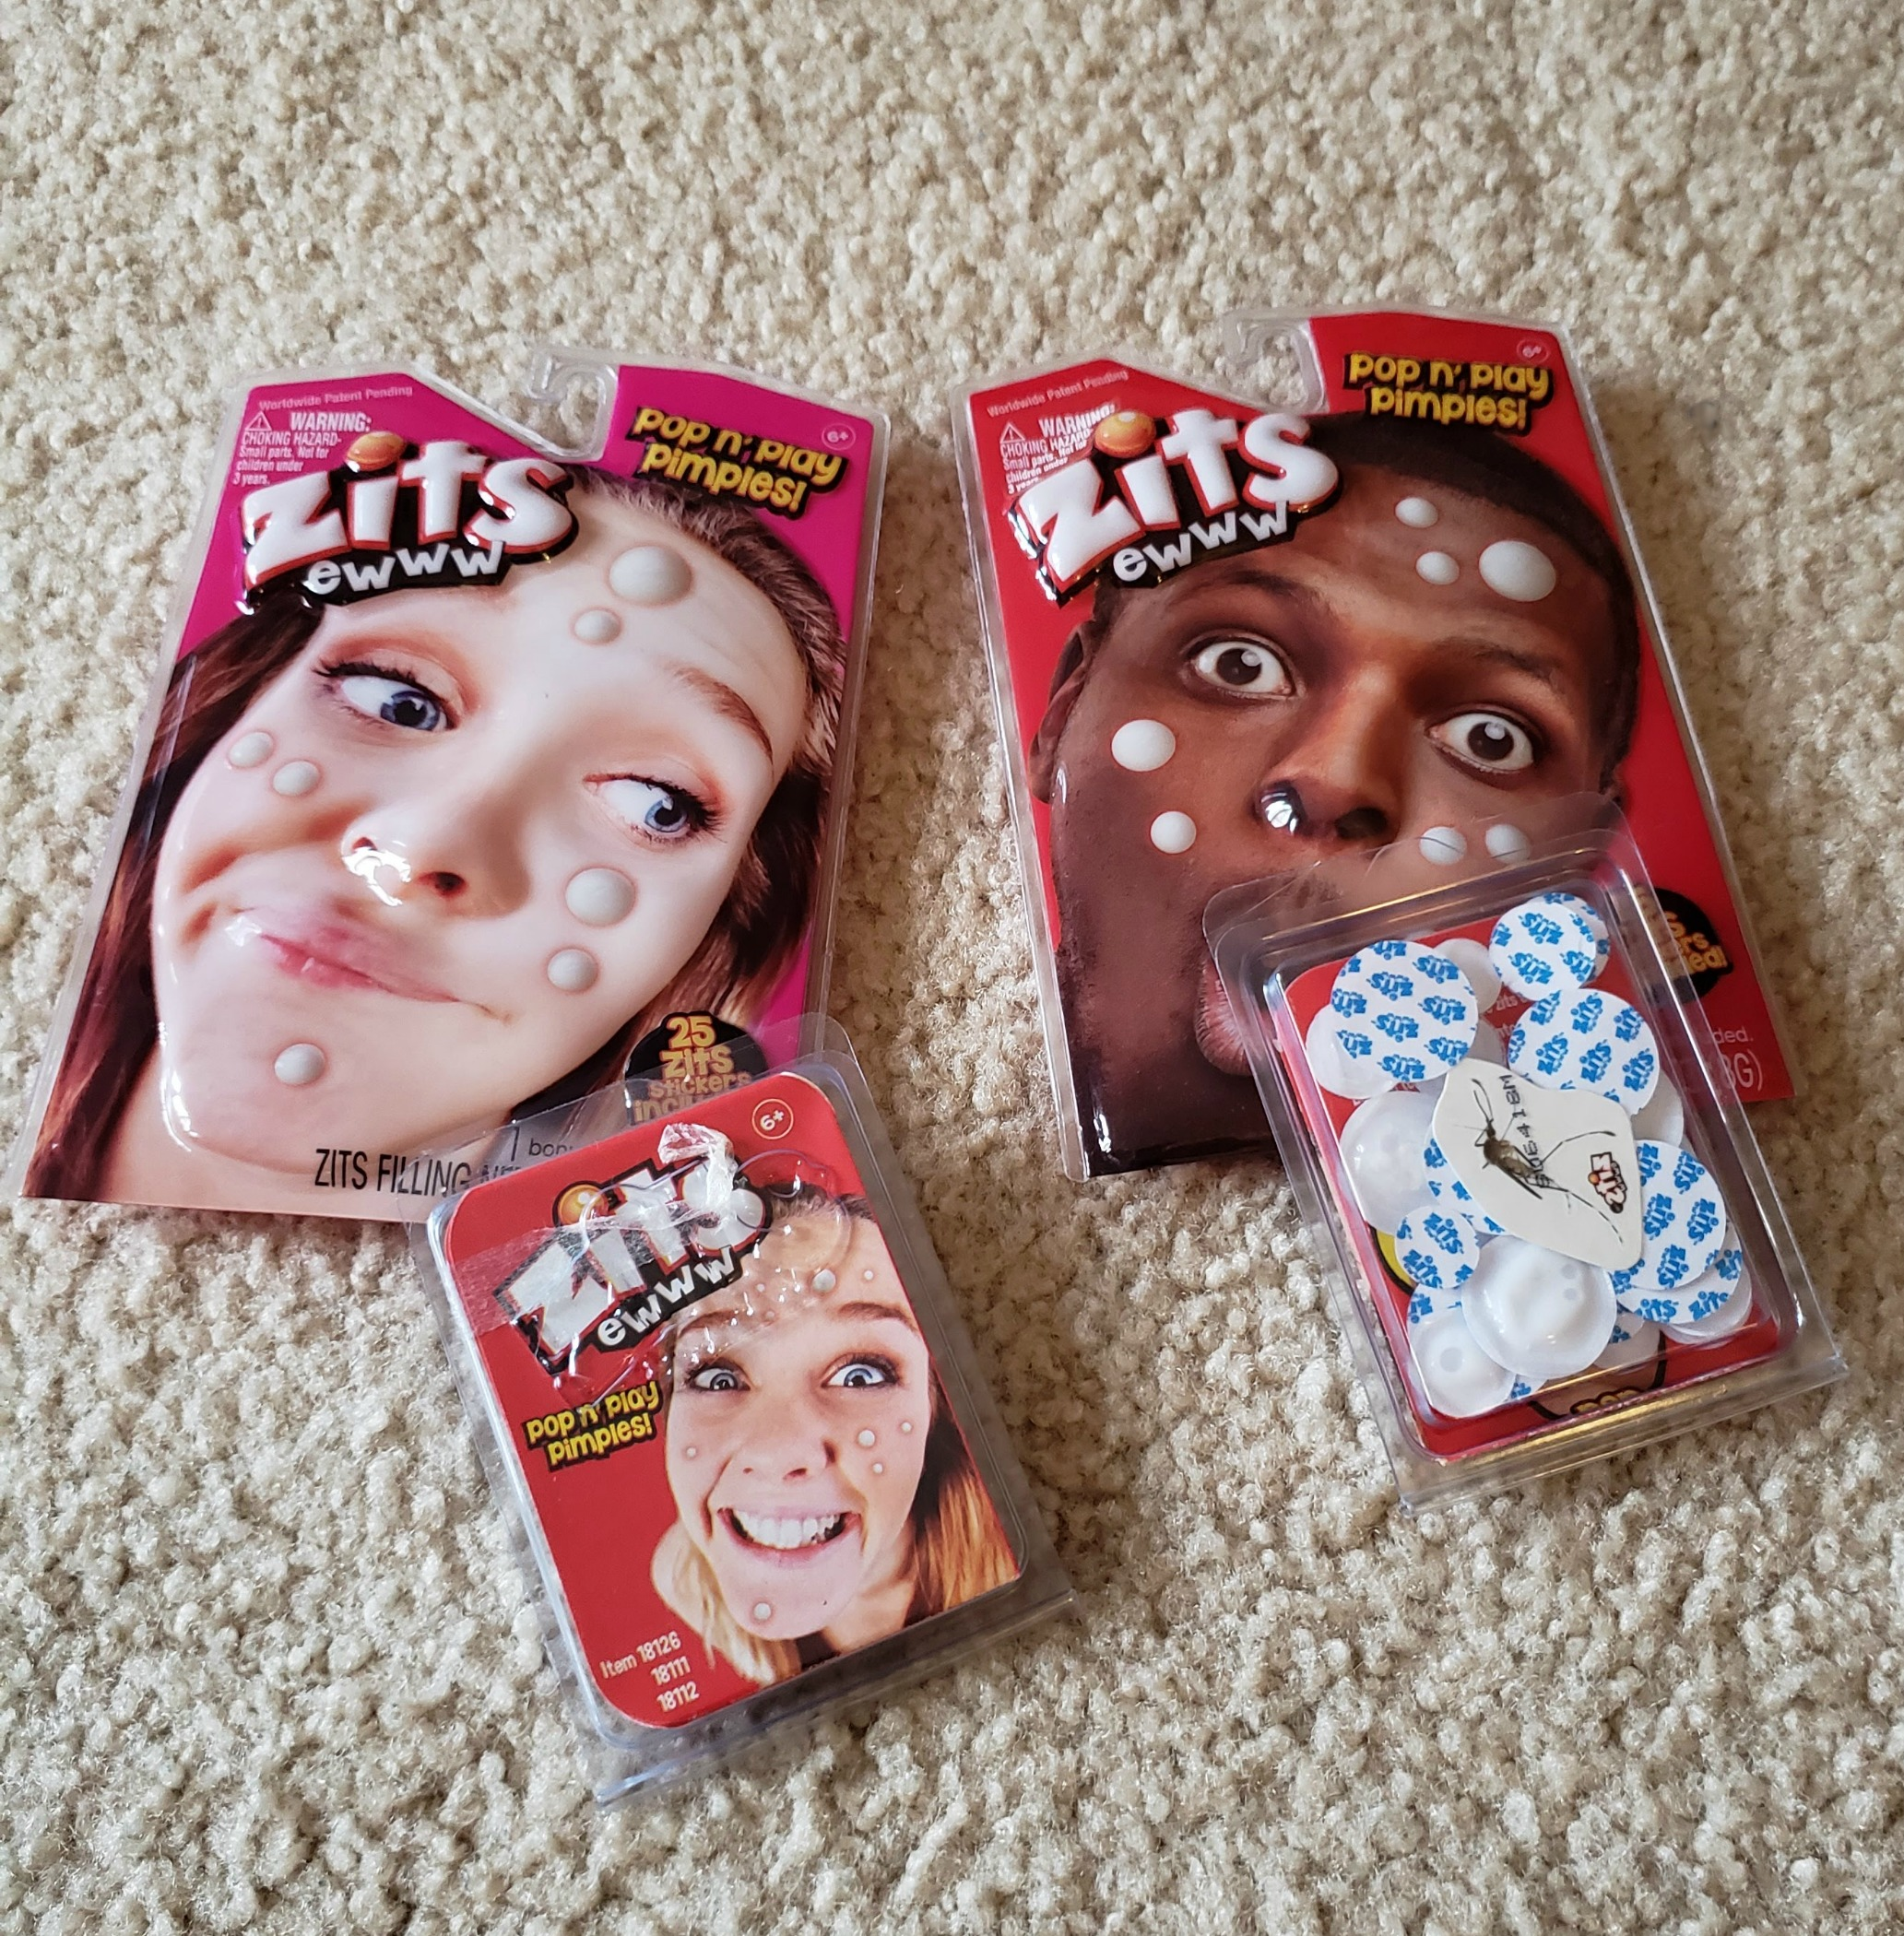 zits-ewww-pop-n-play-pimples-review